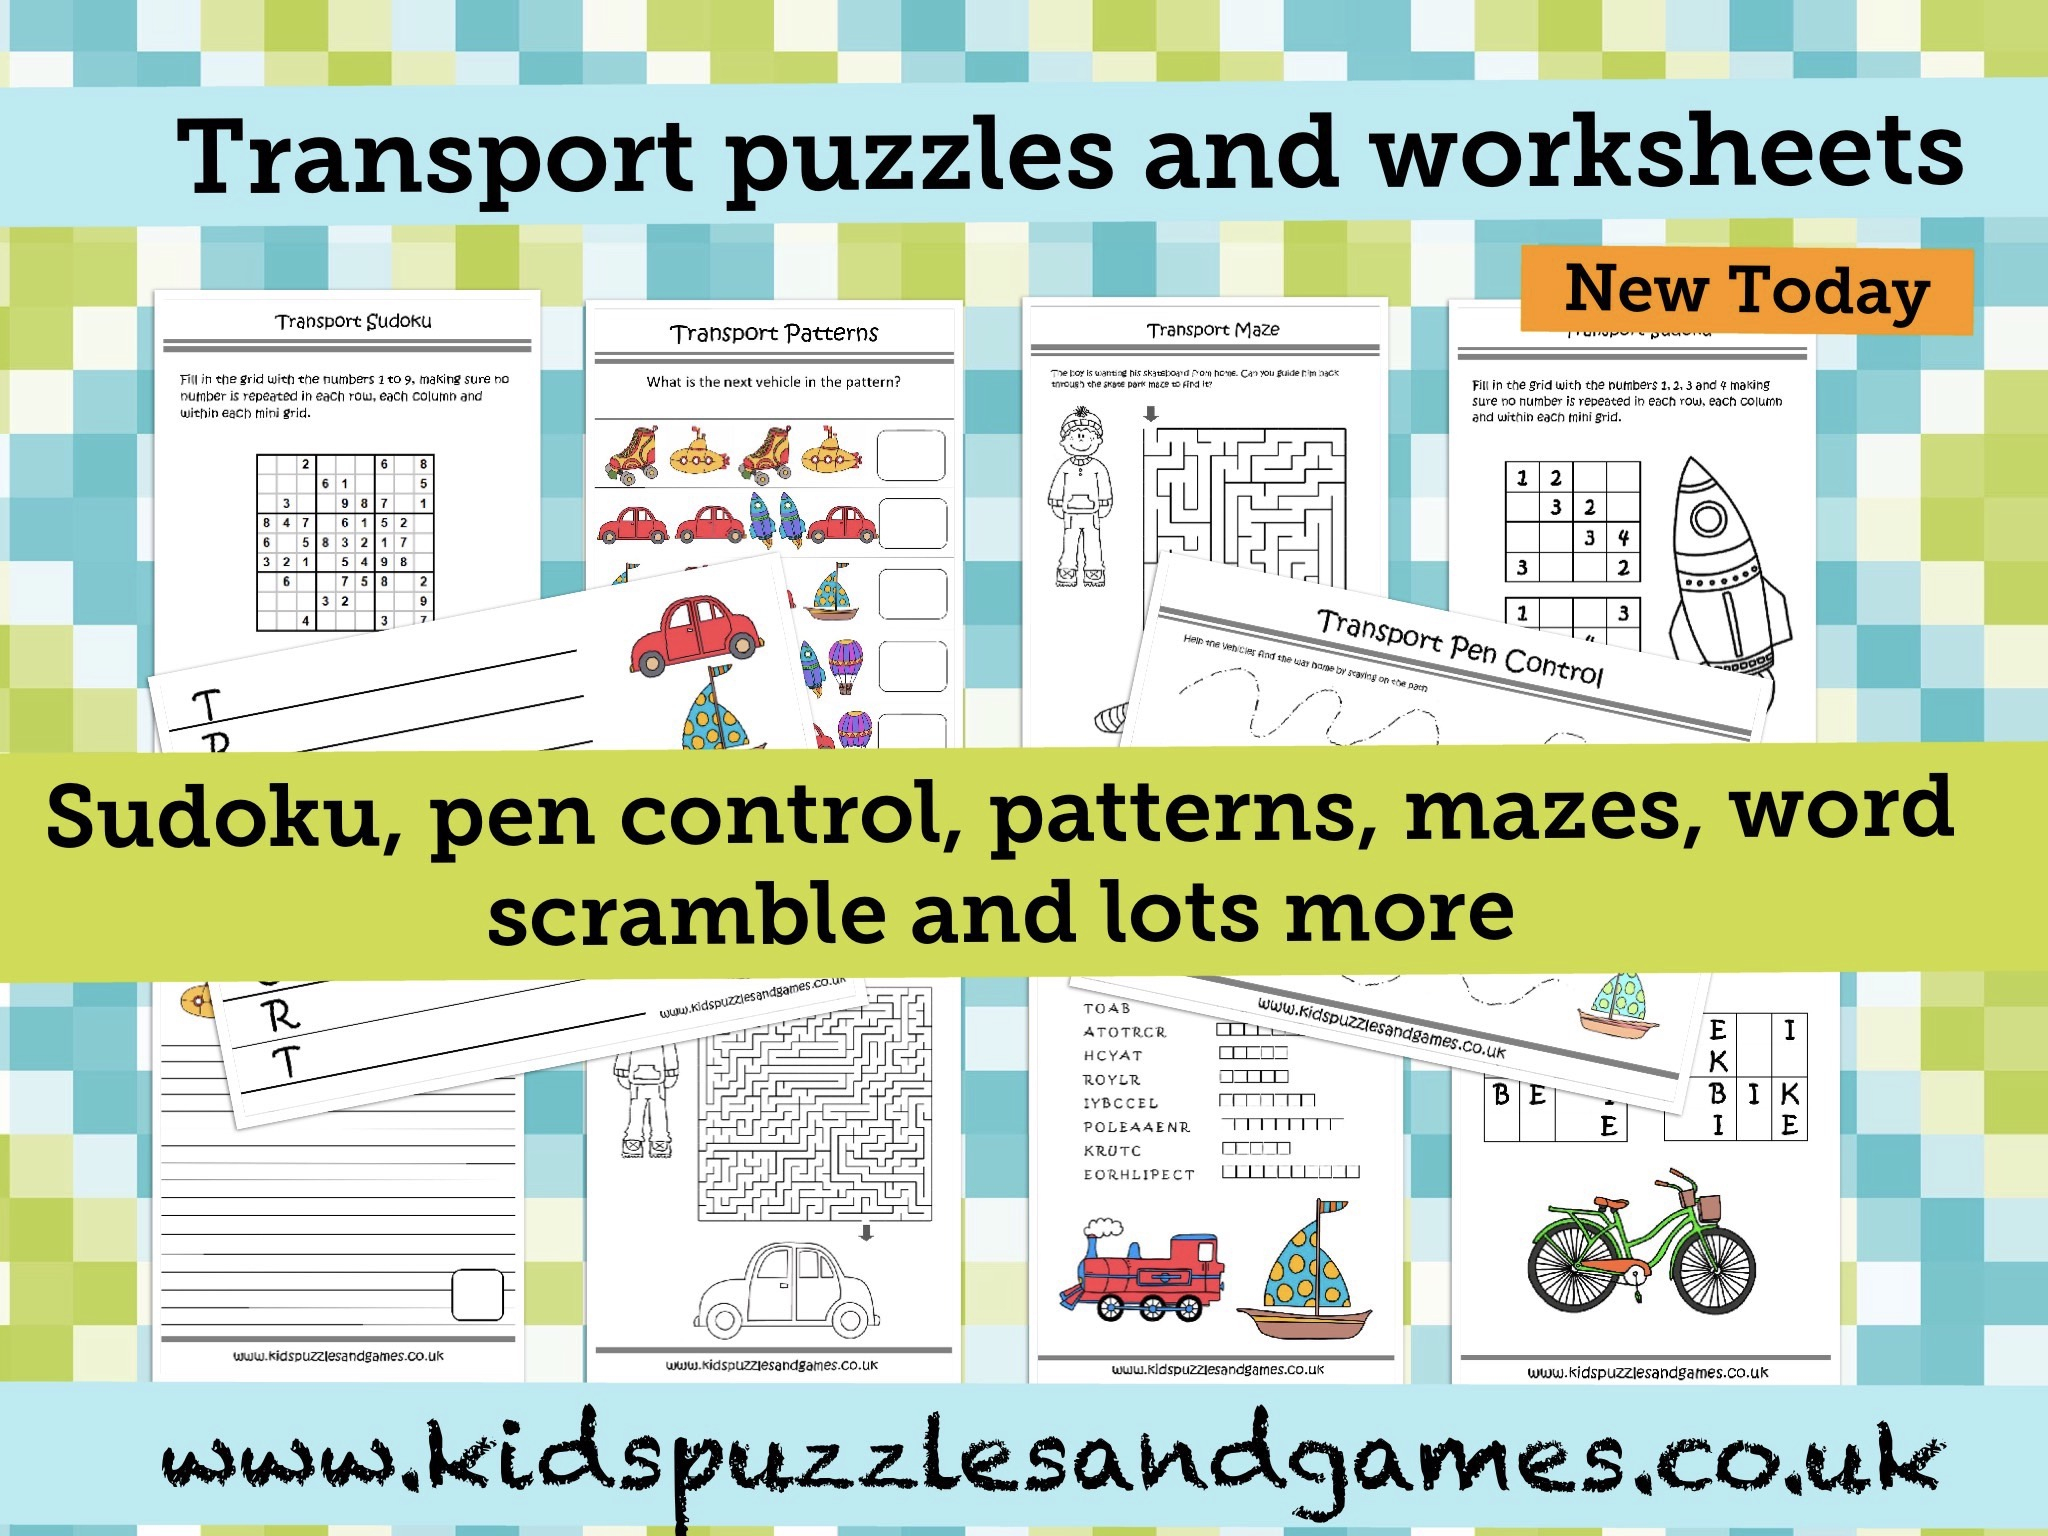 Welcome To Kids Puzzles And Games - Printable Puzzles For 8 Year Olds